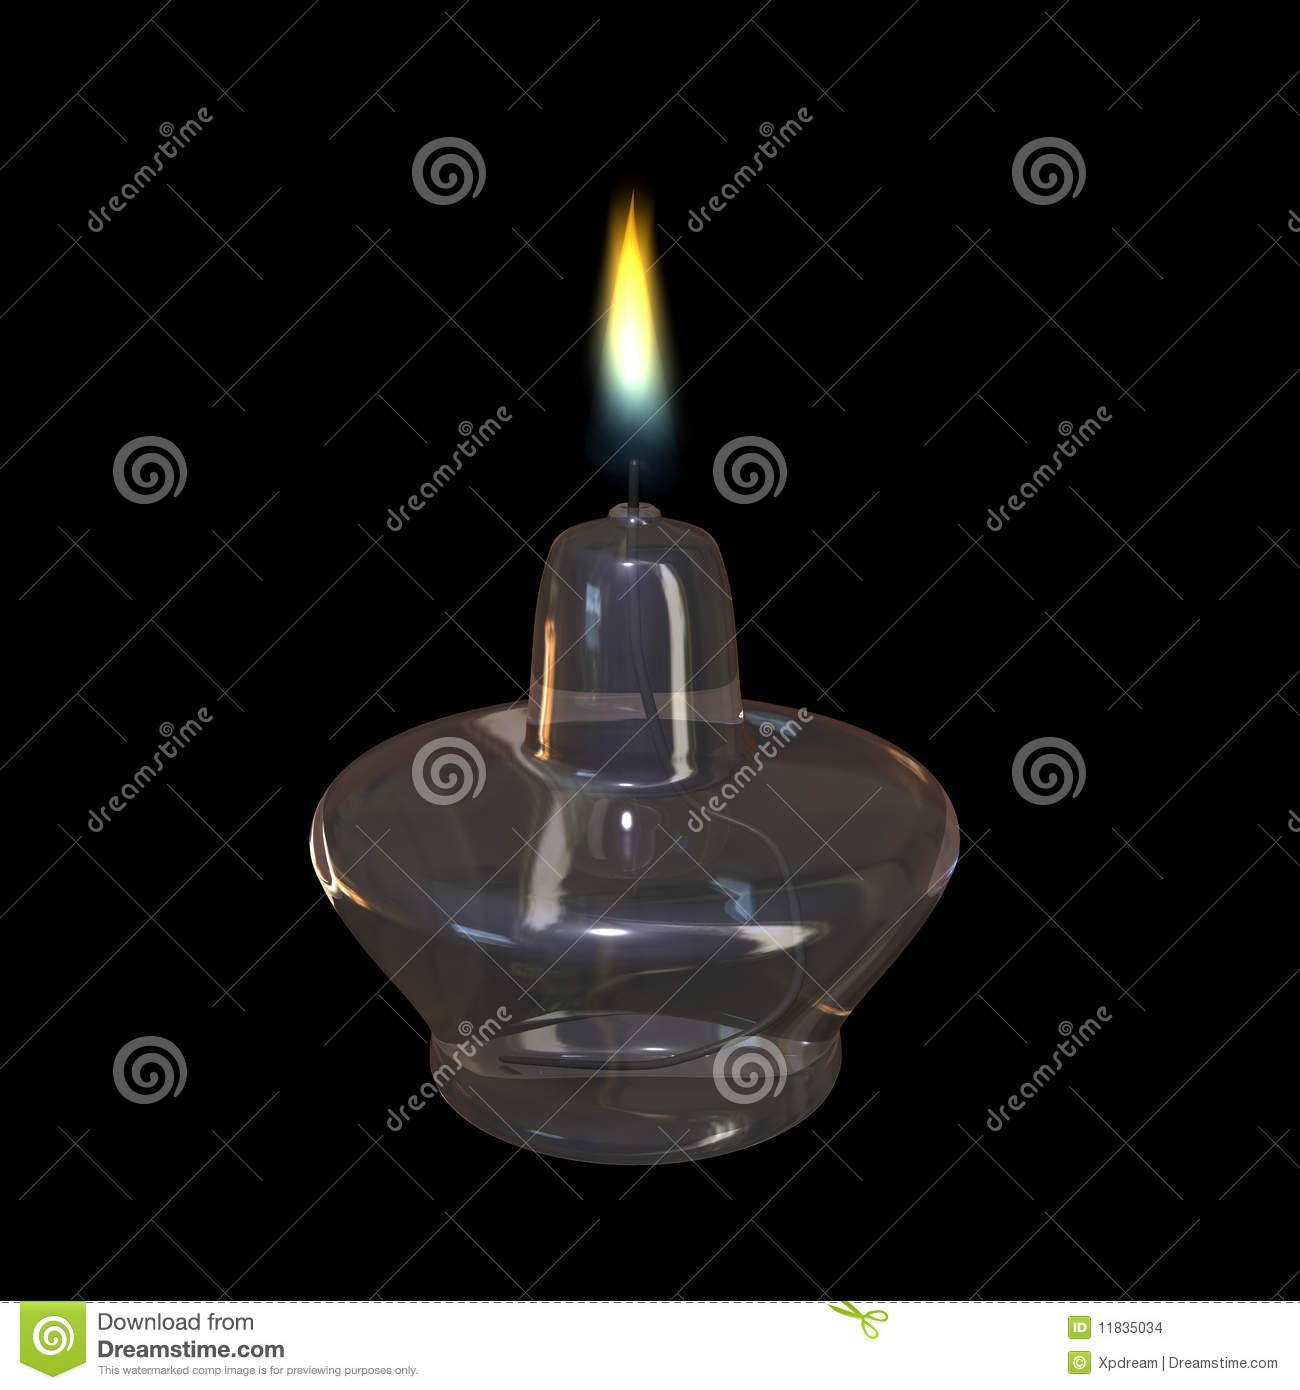 how to use an alcohol burner